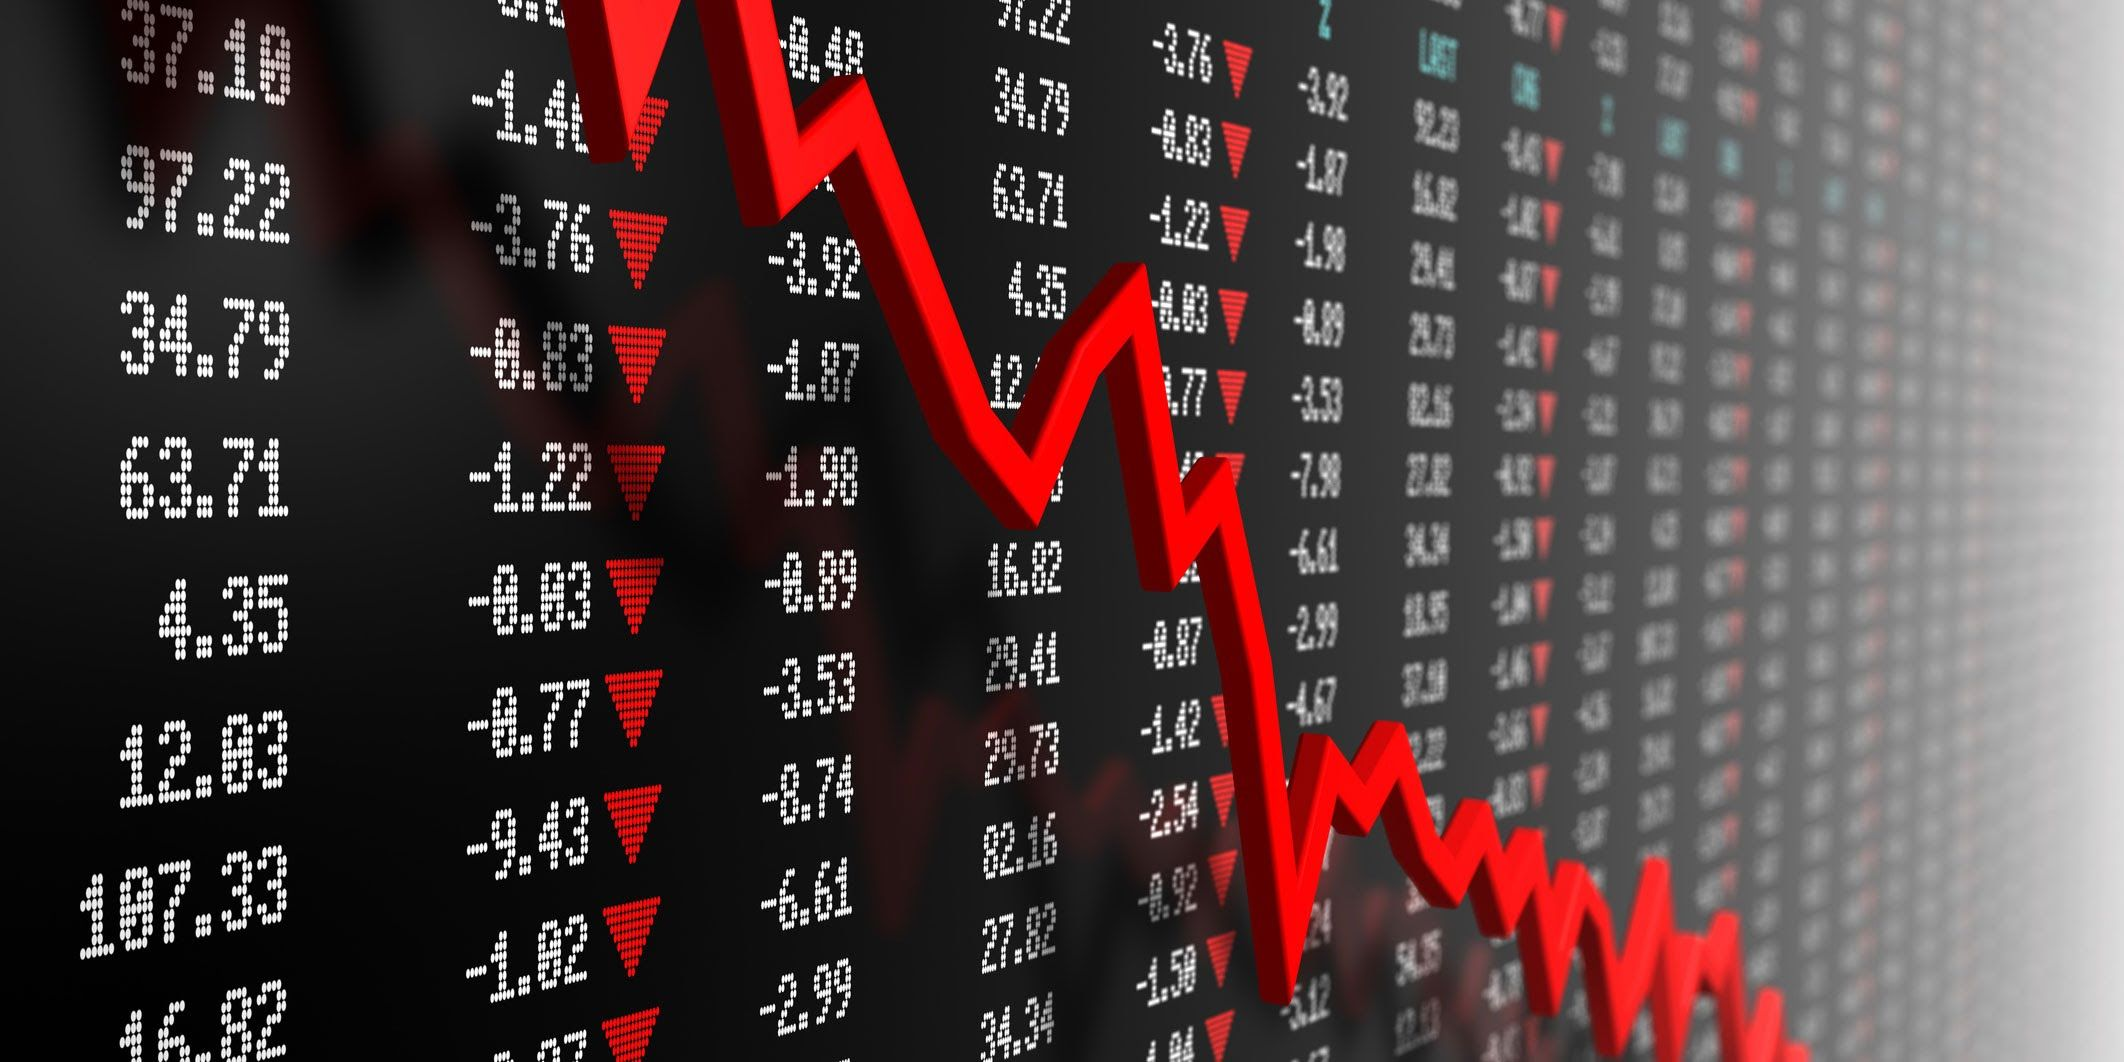 China S Stock Market Is Getting Pummeled And History Shows That Is Bad News For Us Markets Stock Market Financial Markets Investing